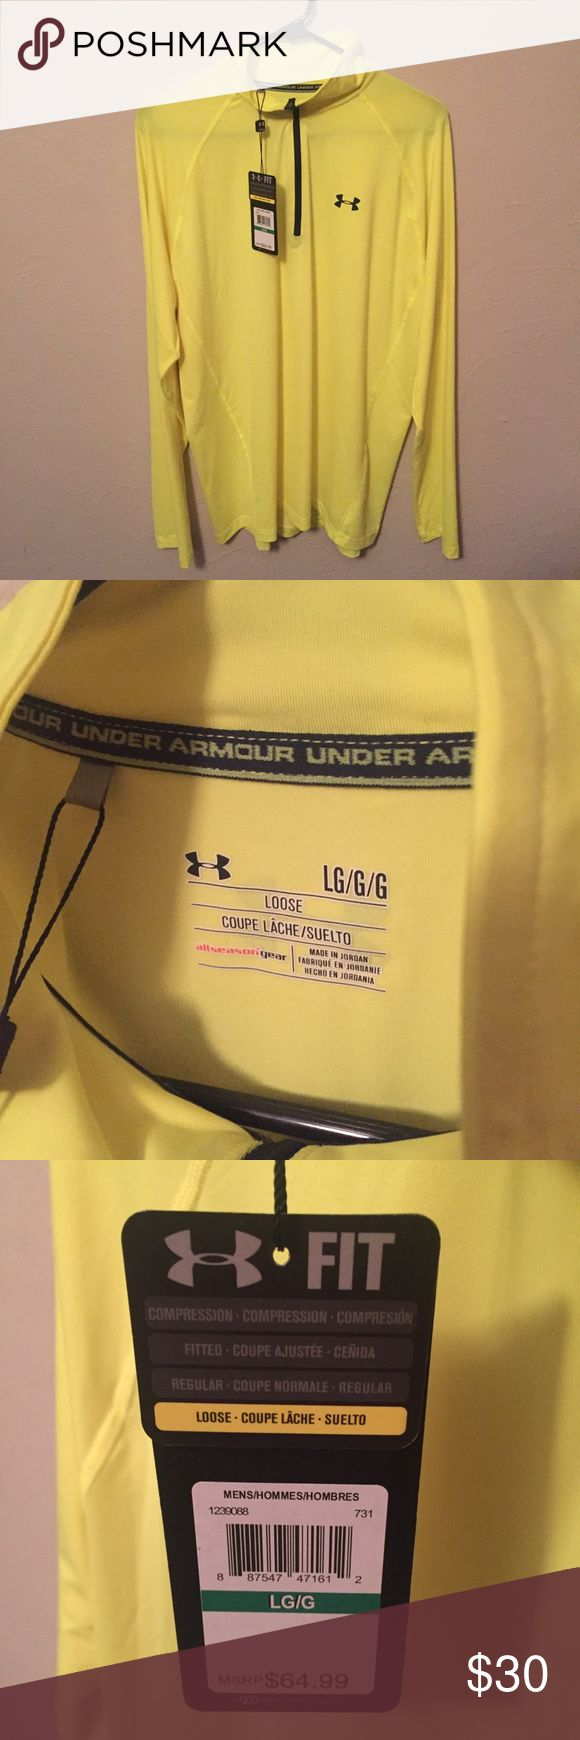 Under Armour 1/4 Zip Golf Shirt NWT - Men's Large Under Armour 1/4 Zip Golf Shirt (Loose) - Men's Large - Brand New with Tags  The color is a fluorescent shade of yellow.   This item comes from a smoke-free, pet-friendly home. Under Armour Shirts Sweatshirts & Hoodies